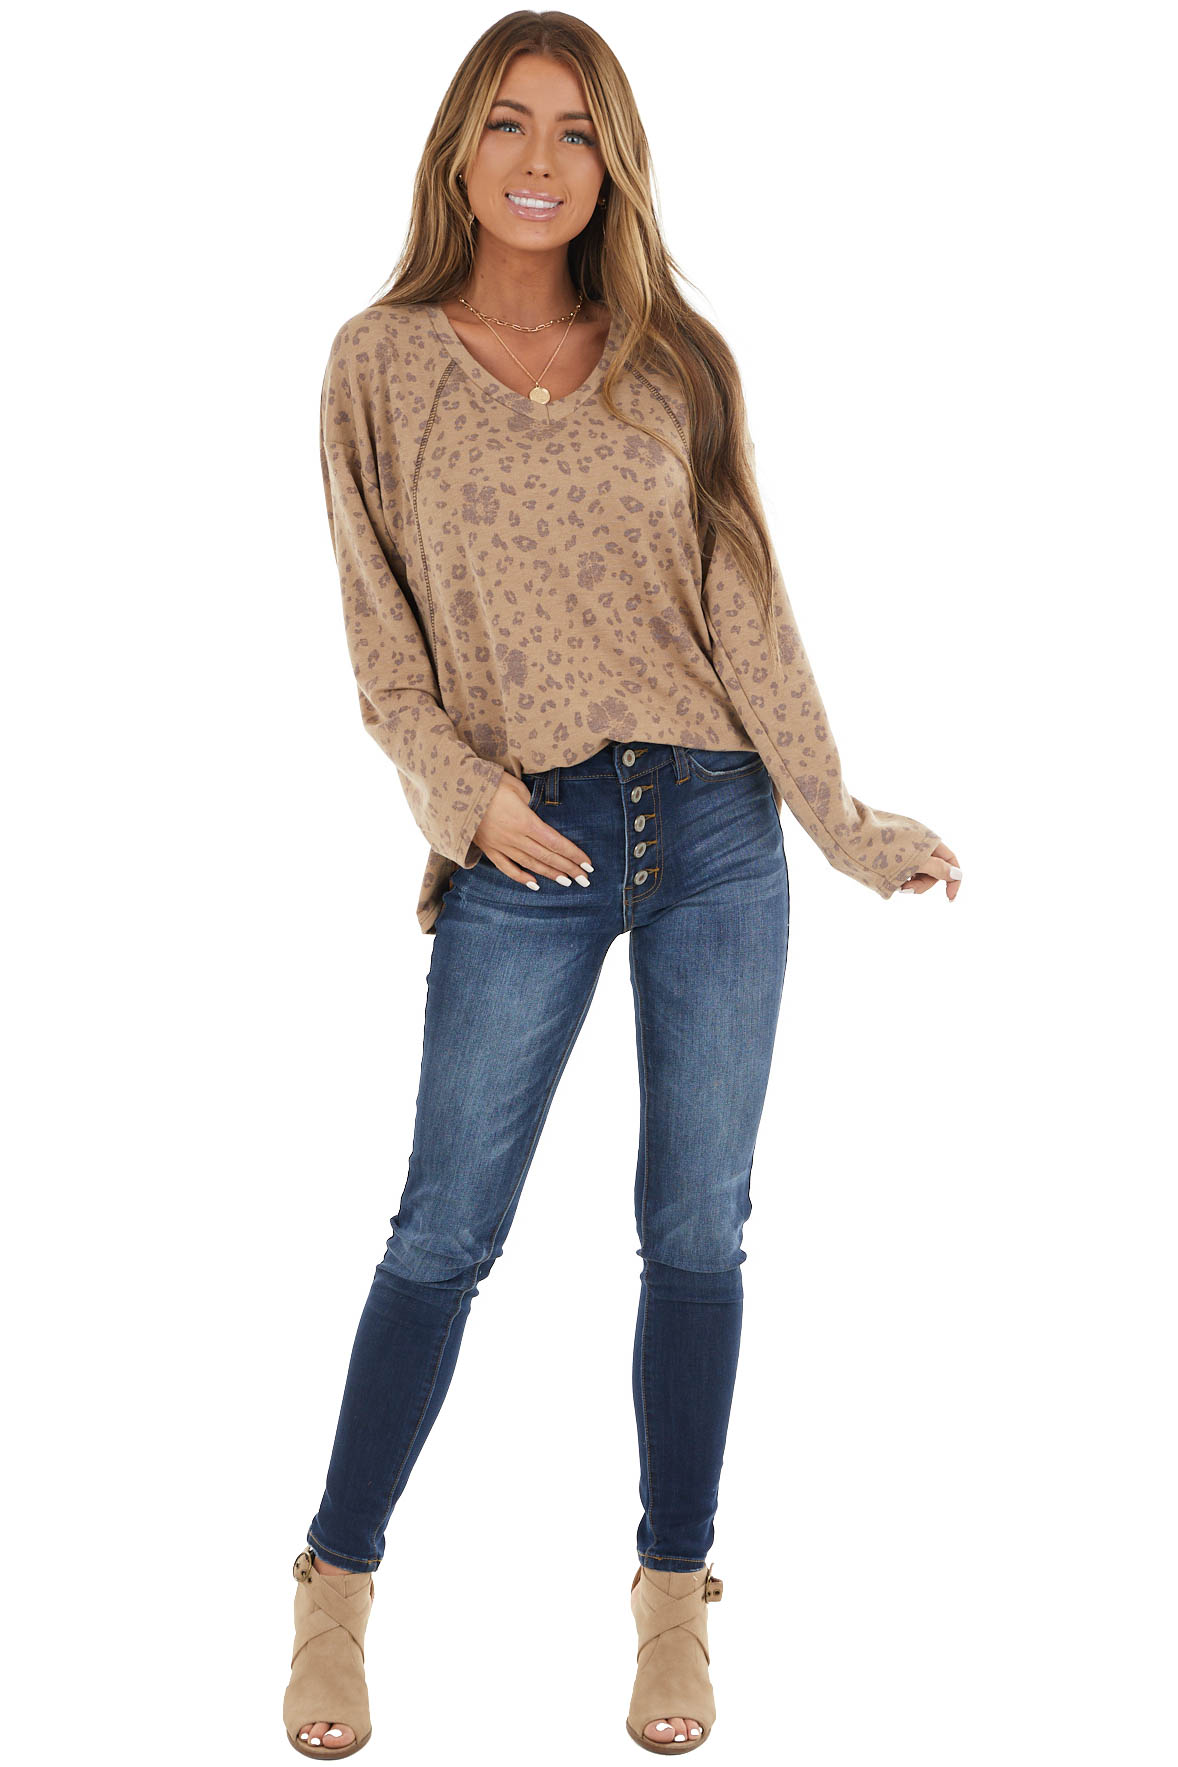 Taupe Leopard Print French Terry Knit Long Sleeve Top